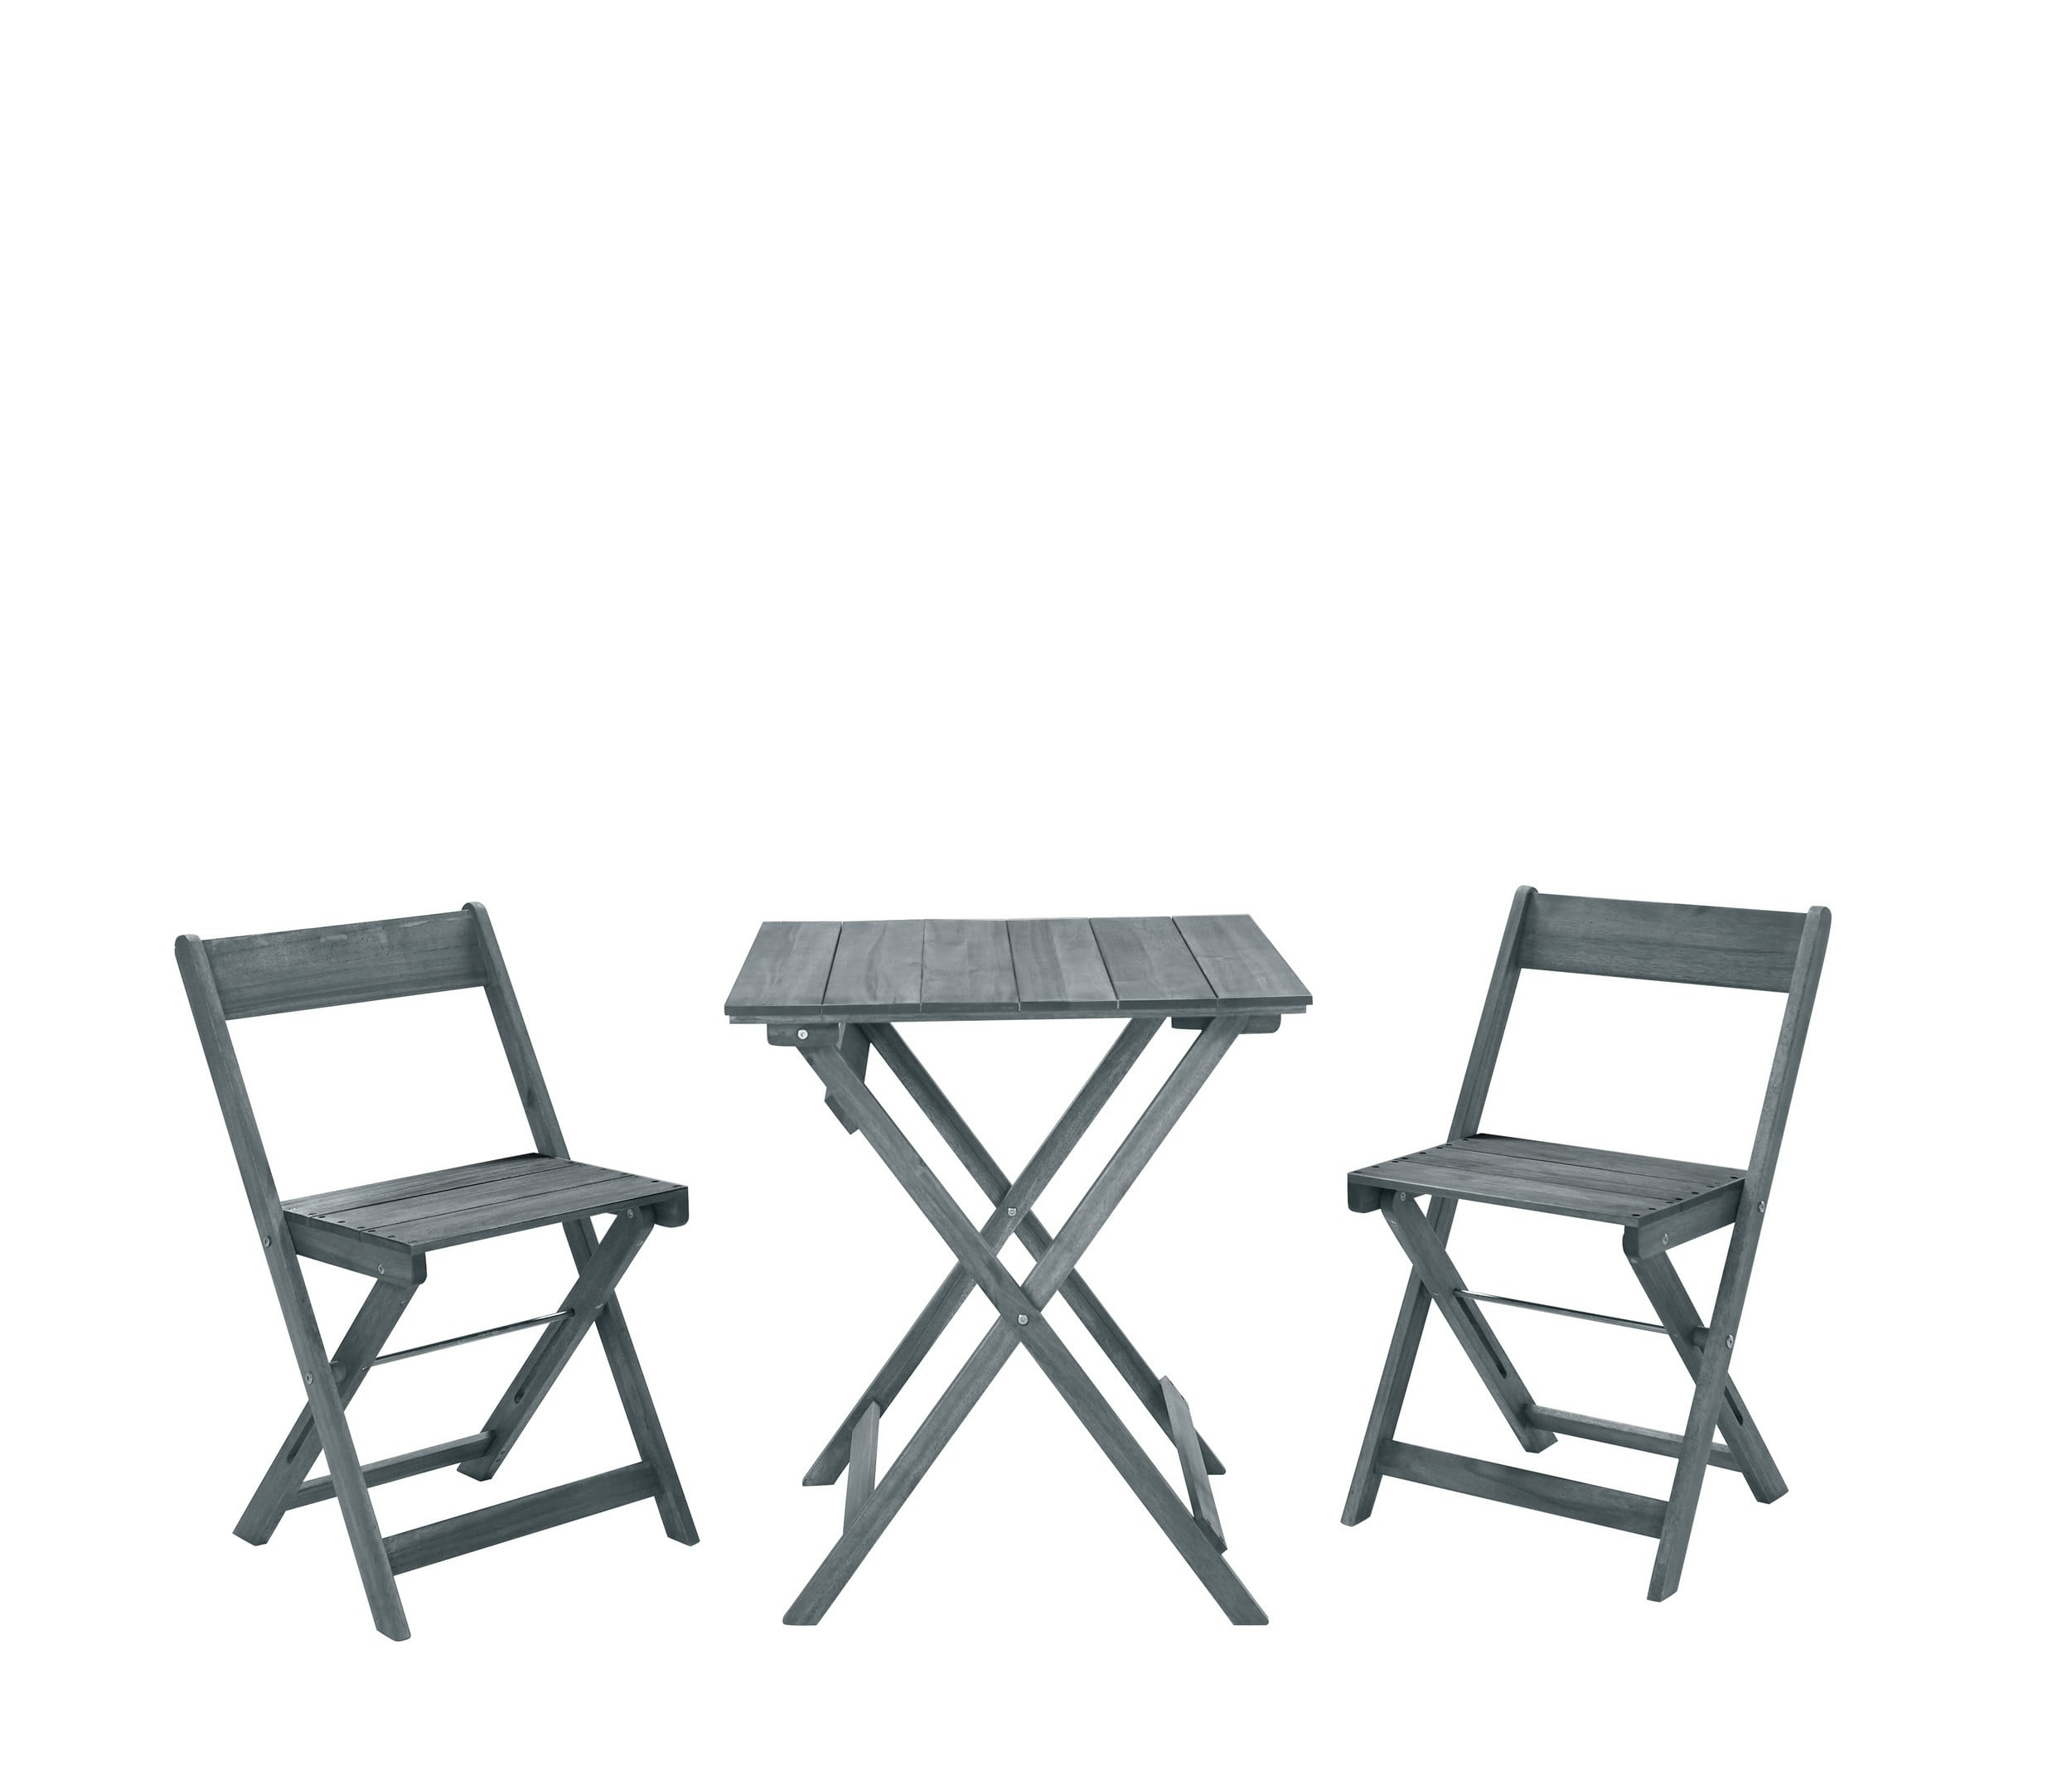 Linon Home Decor Products Inc OD14GRYAS01U Rockport Gray 3 Piece Square Table Set